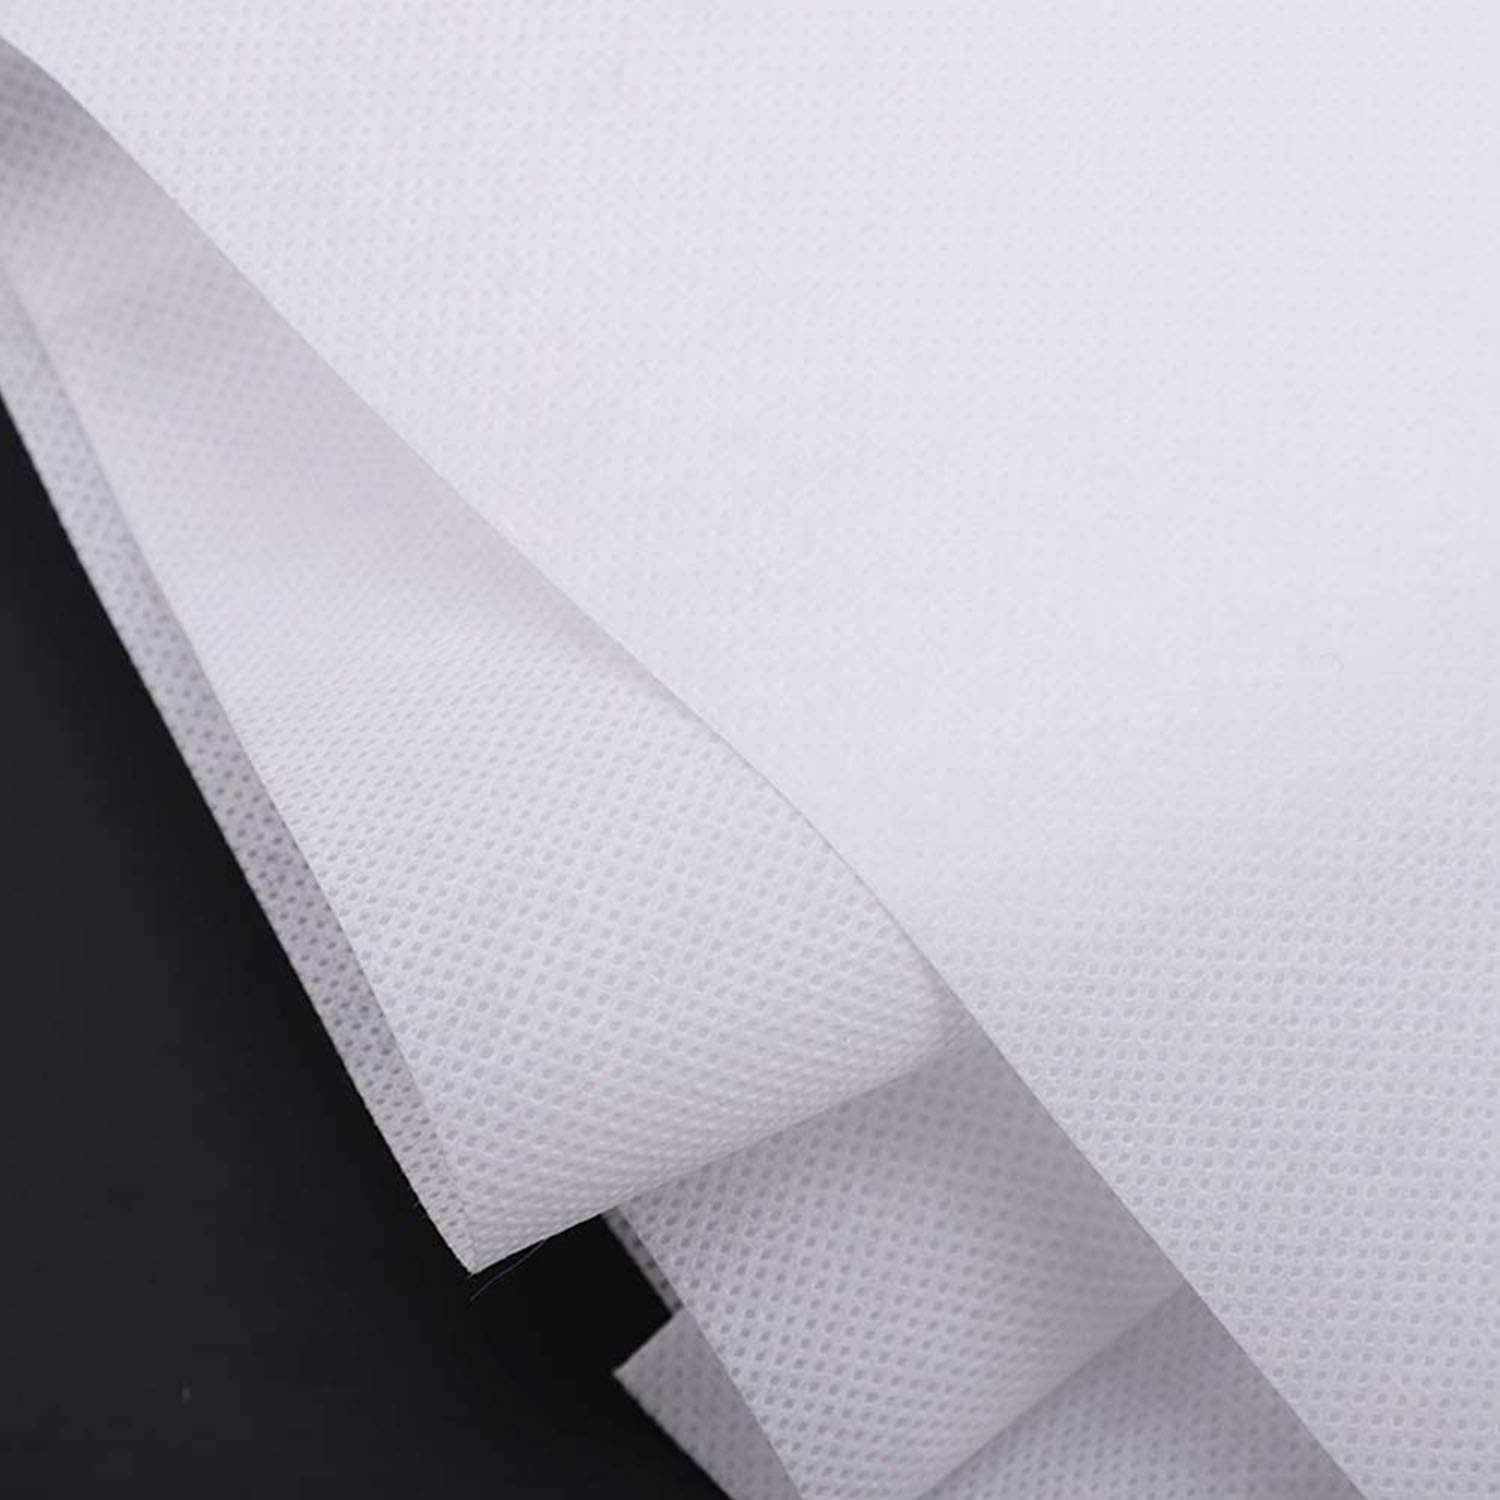 (5m/196.85in) Cloth Disposable Waterproof Non-Woven Fabric, 95% Polypropylene Fabric, Necessities Thickened Disposable Non-Woven Fabric, DIY Handmade Material WFB05001 61MO3UpF6-L